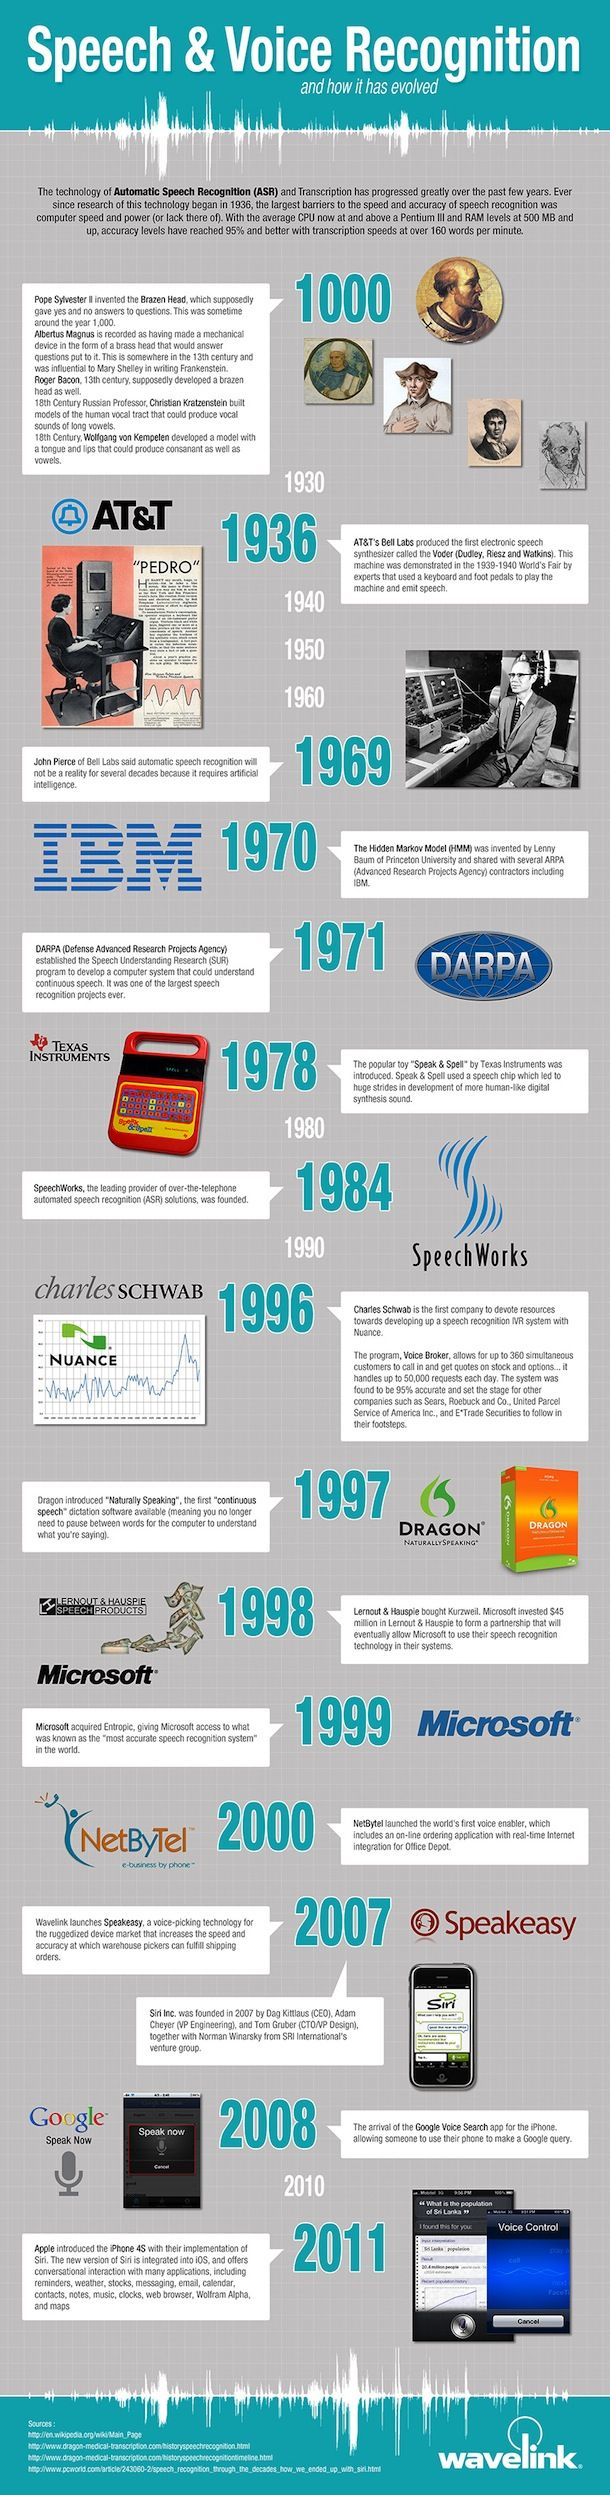 [Infographic] The 1,000-Year Evolution of Speech and Voice Recognition | The Committed Sardine